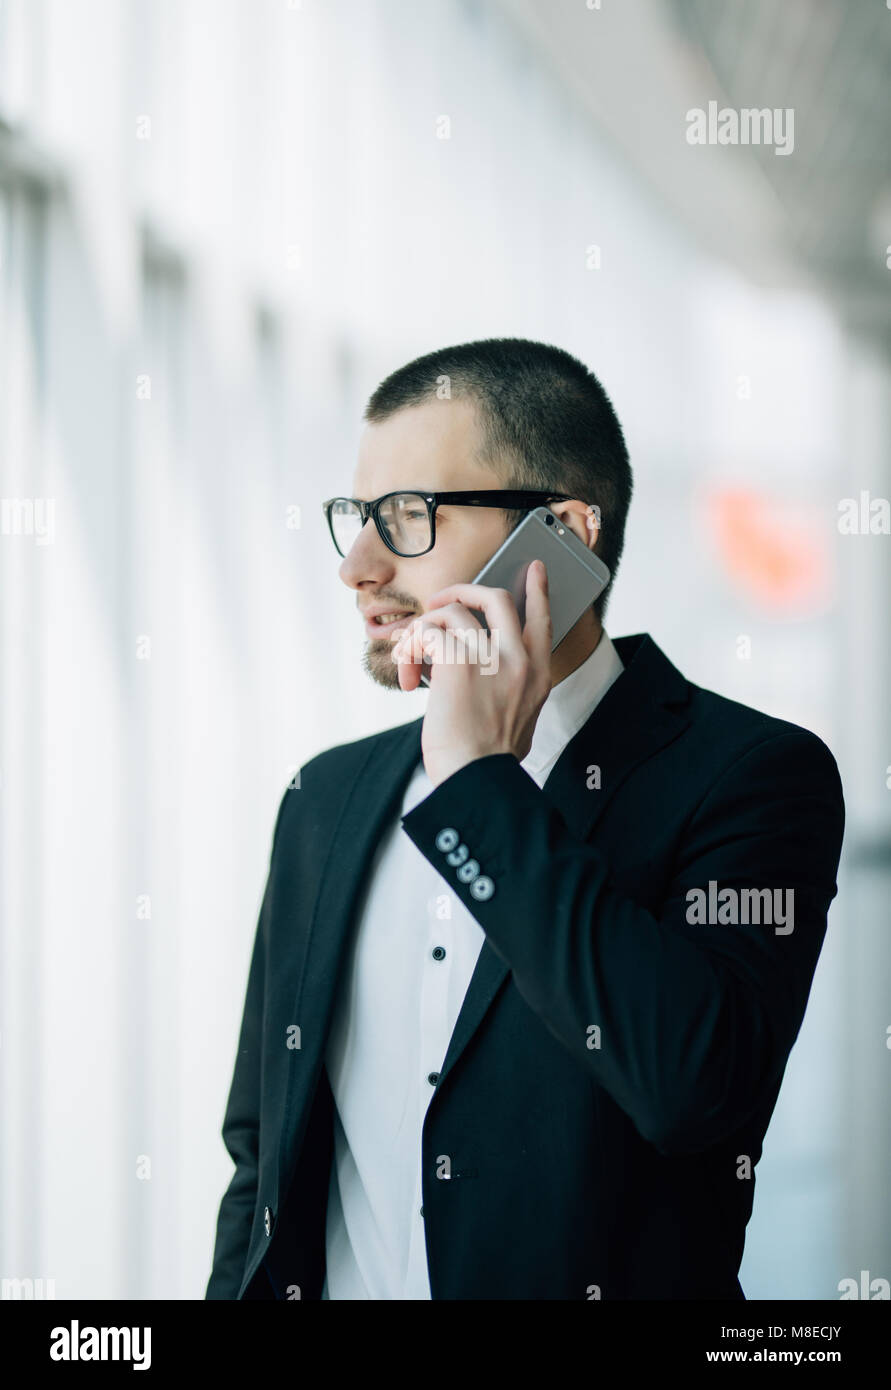 Mature business man standing inside office building and using cell phone. Man standing by window and talking on - Stock Image